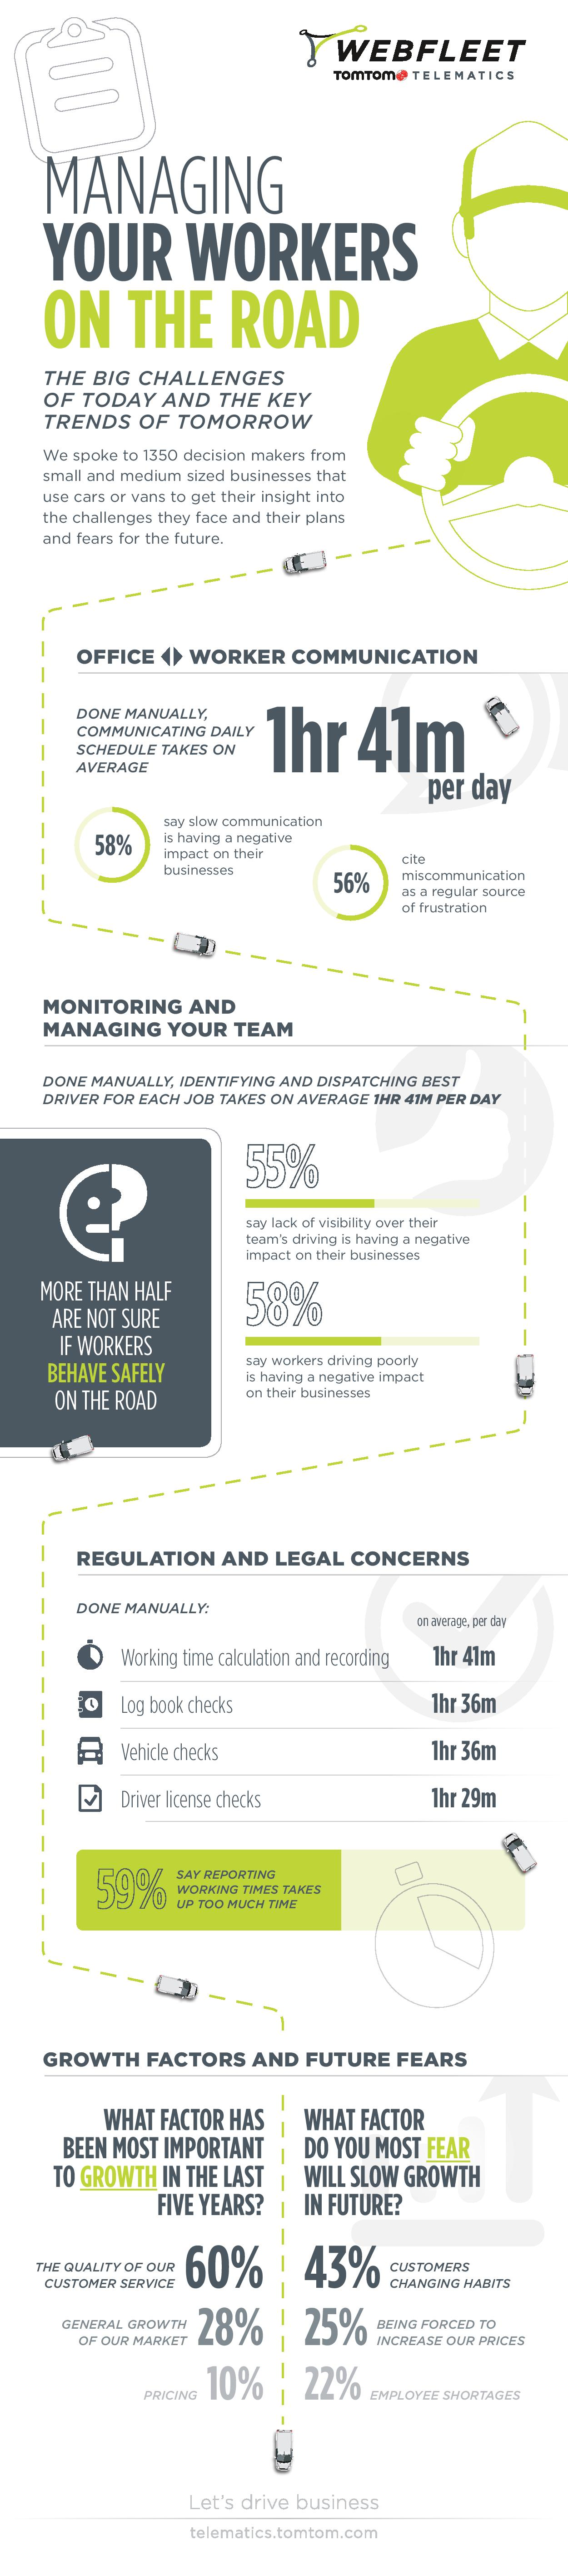 Infographic on vehicle management challenges for SMEs